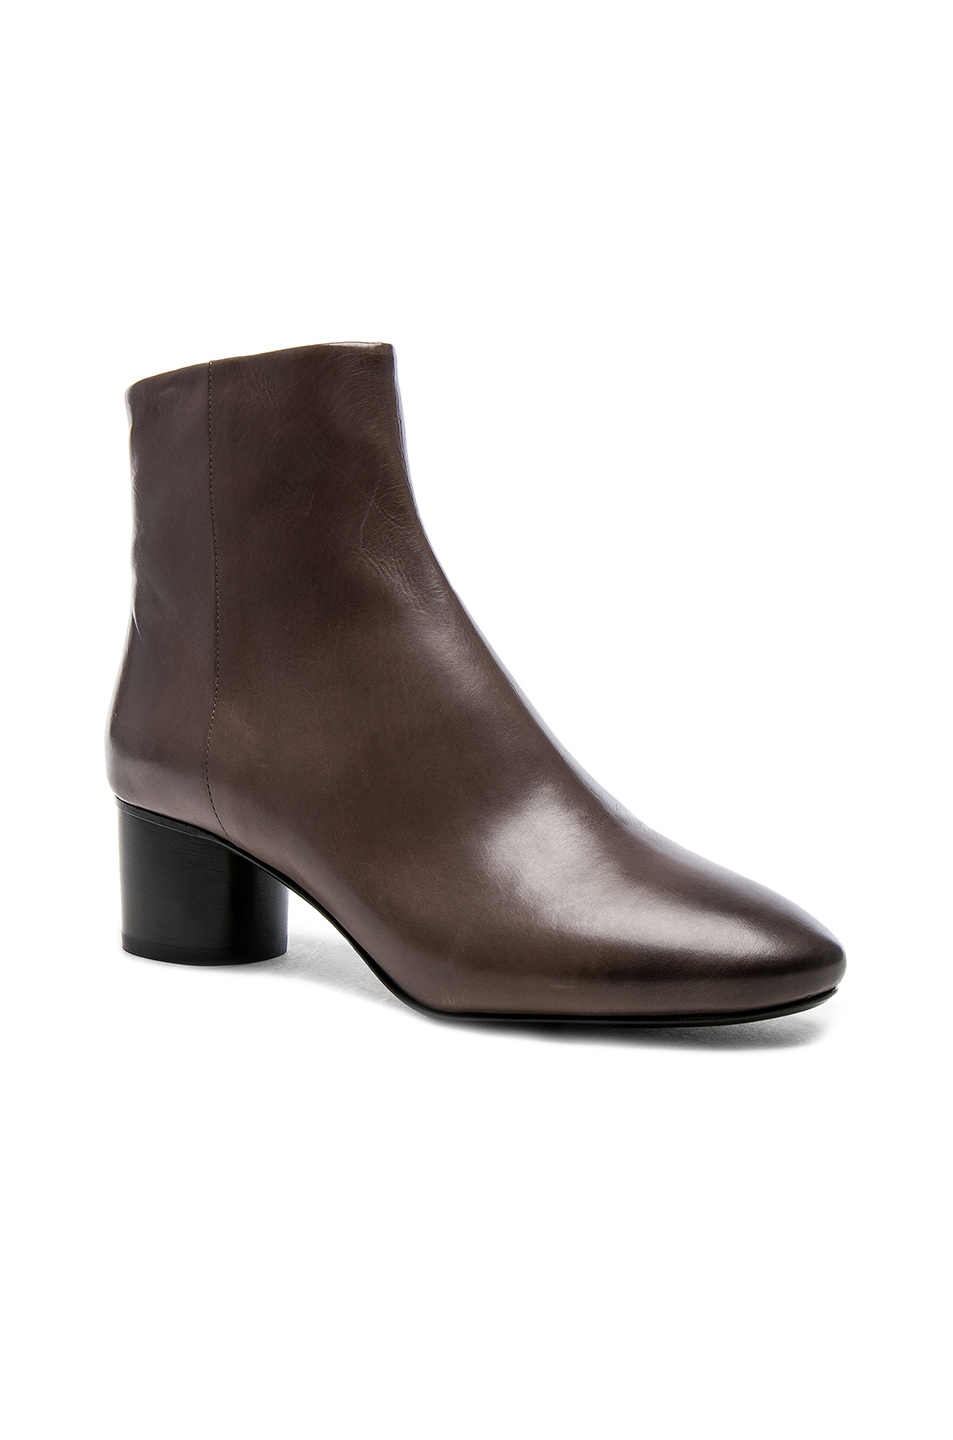 Image 2 of Isabel Marant Leather Danay Boots in Taupe